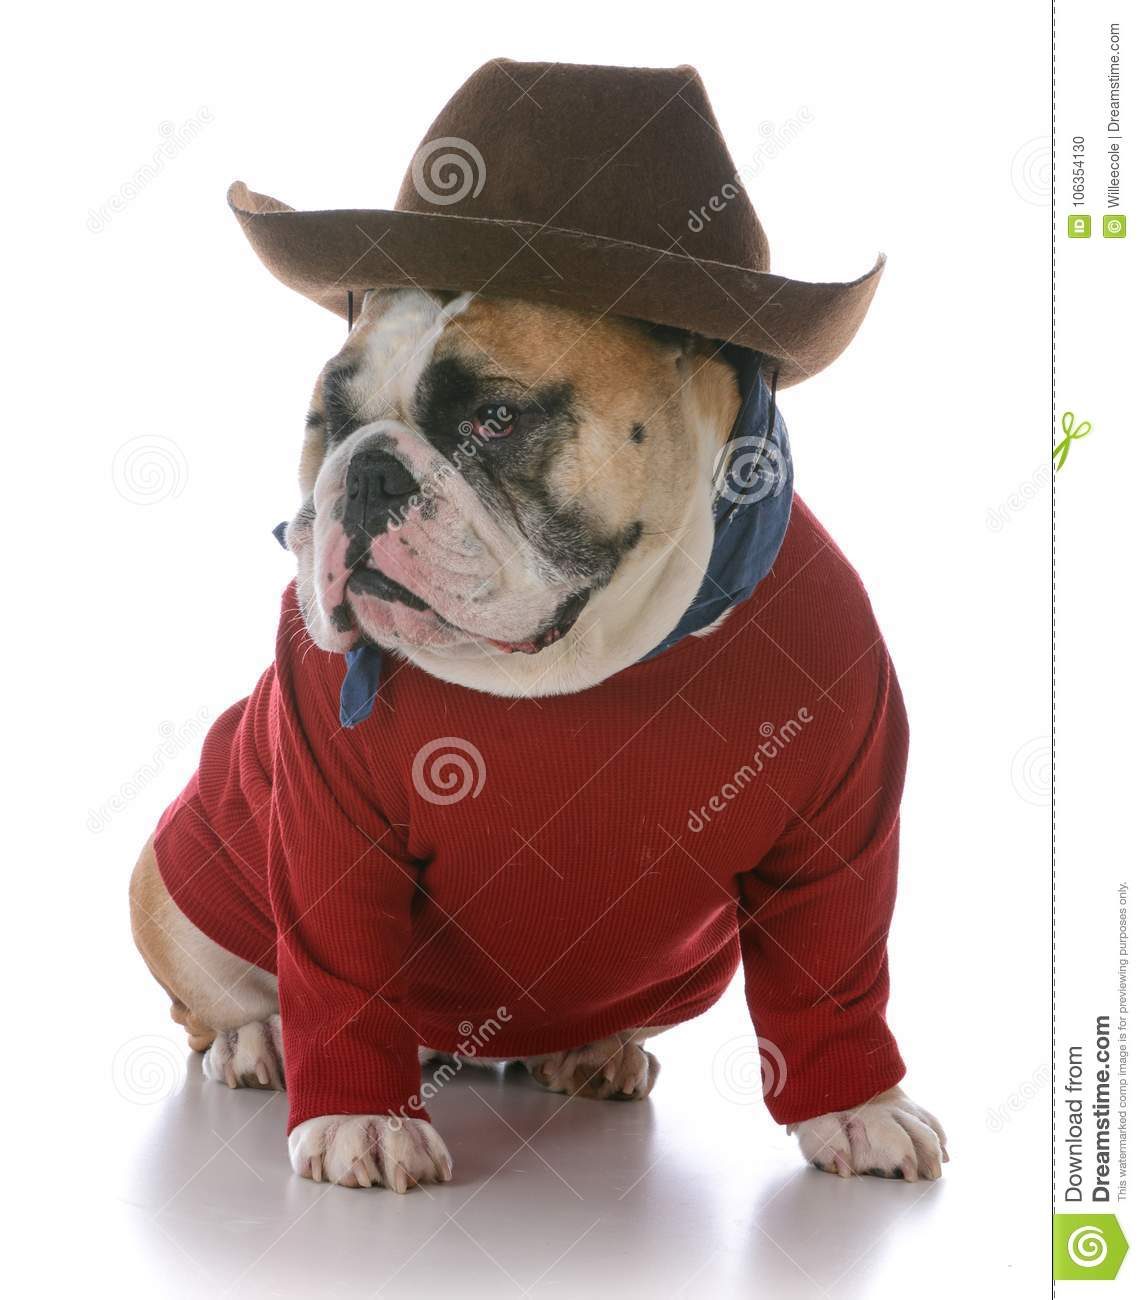 Female English Bulldog Stock Photo Image Of Cowboy 106354130